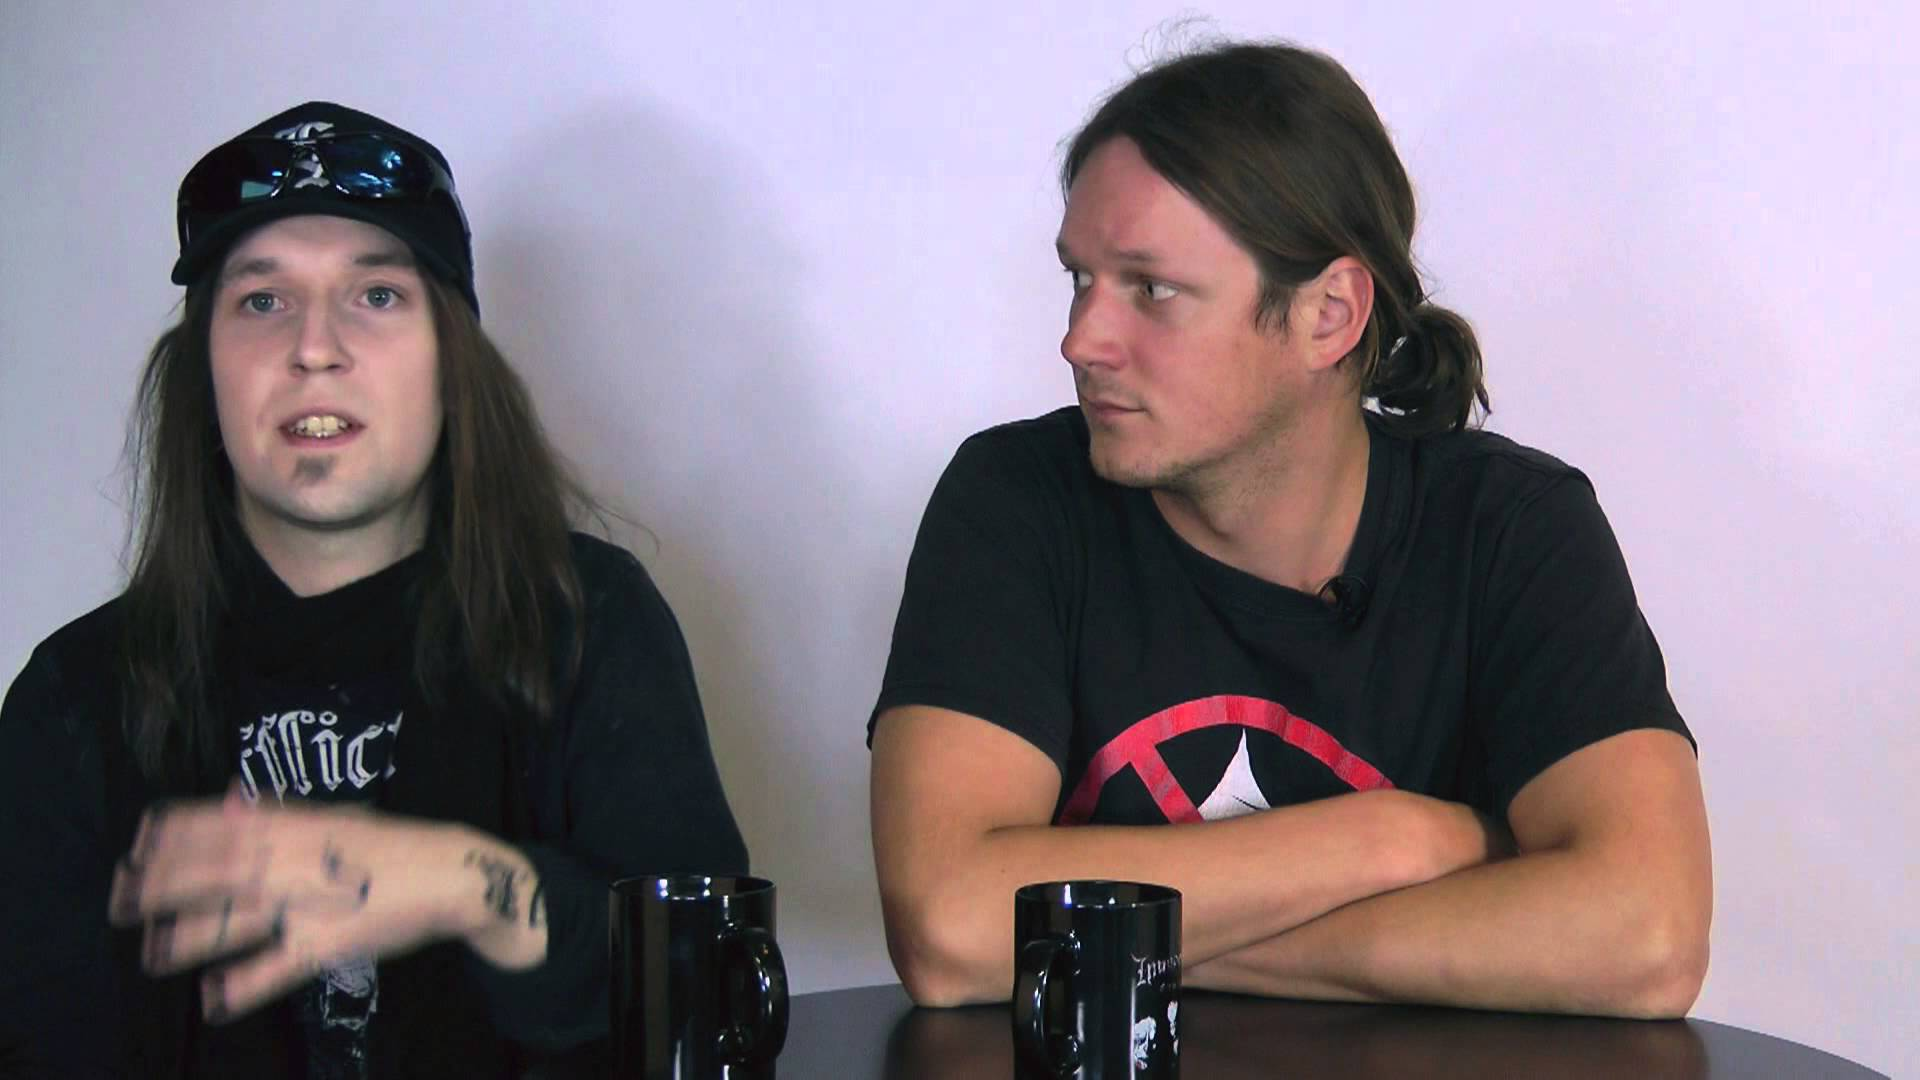 CHILDREN OF BODOM - Halo Of Blood (OFFICIAL TRACK BY TRACK PT 1)